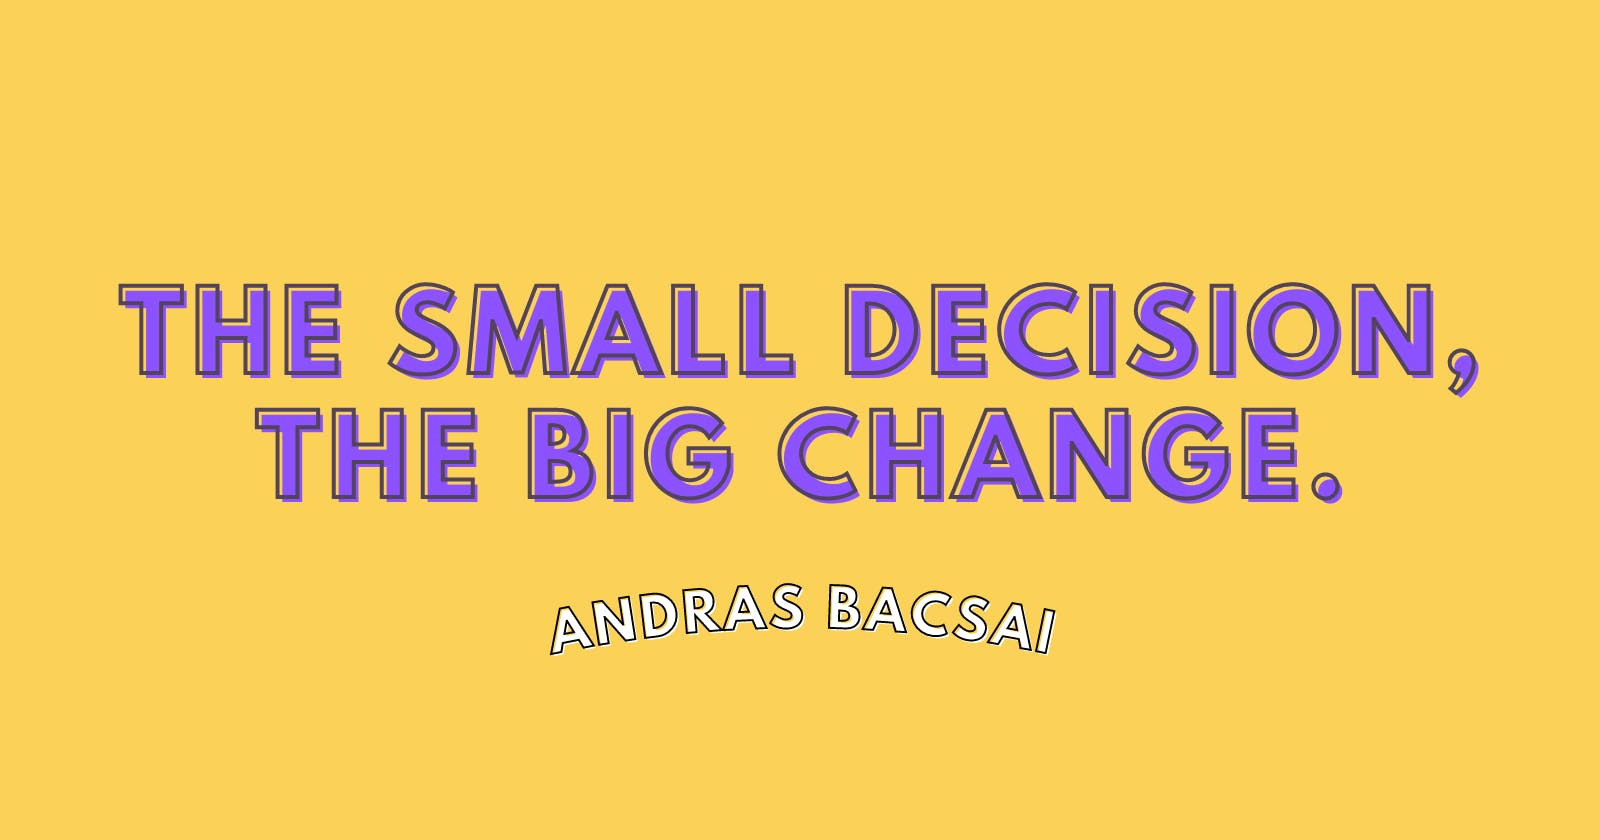 The small decision, the big change.